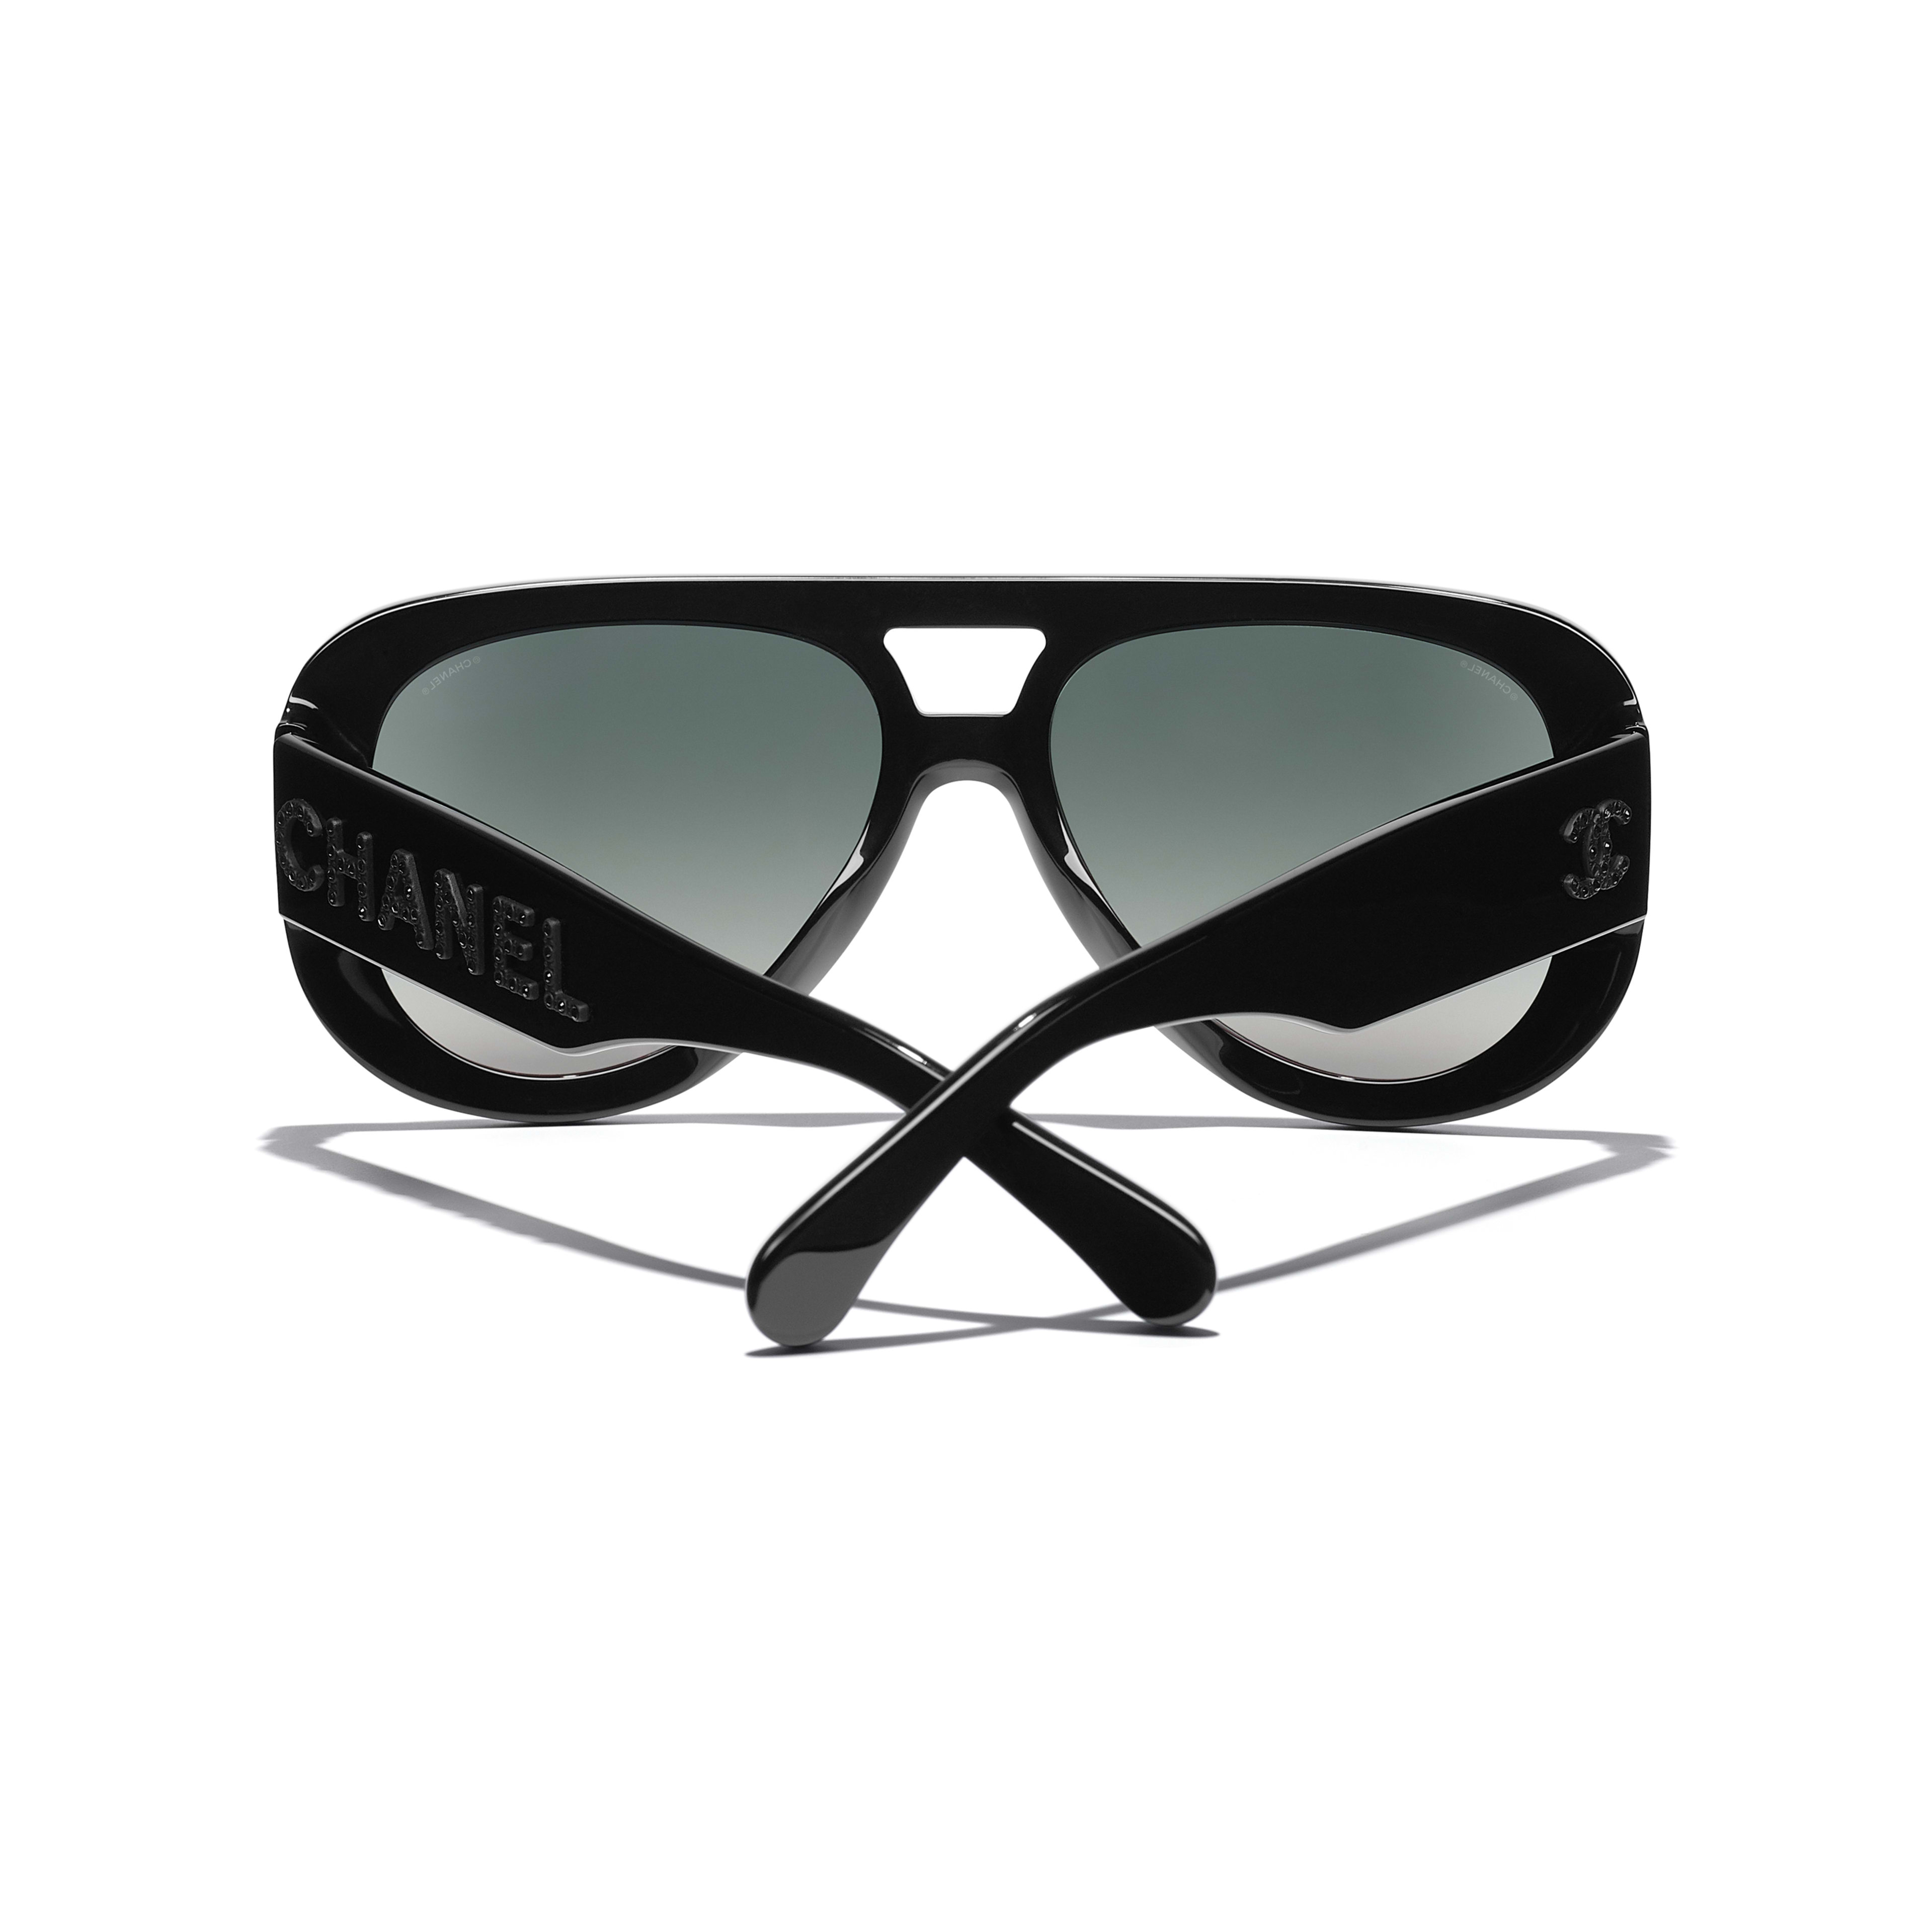 Pilot Sunglasses - Black - Acetate & Diamanté - CHANEL - Extra view - see standard sized version